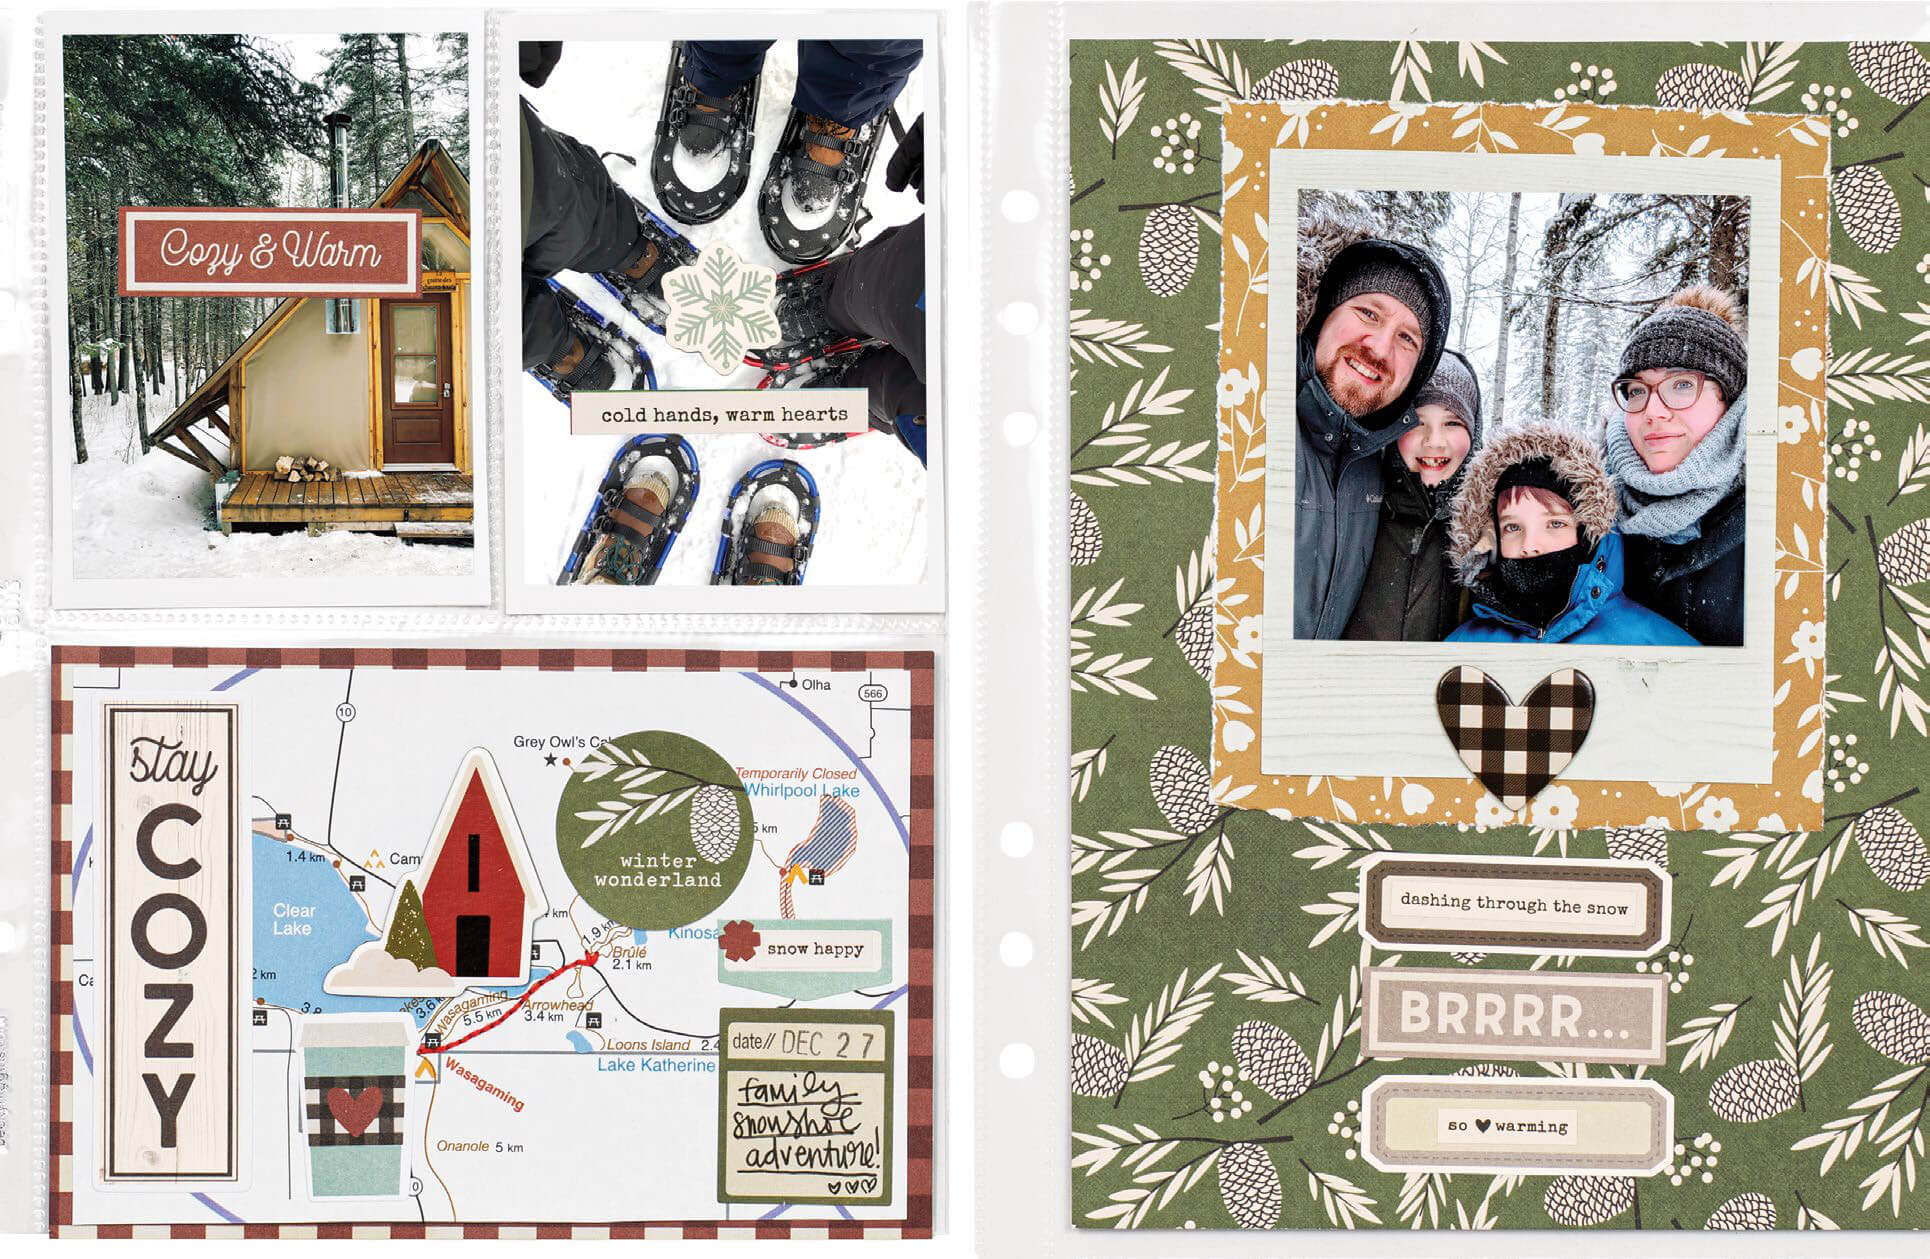 Scrapbook & Cards Today - Winter 2019 - Stay Cozy by Odessa Reichel